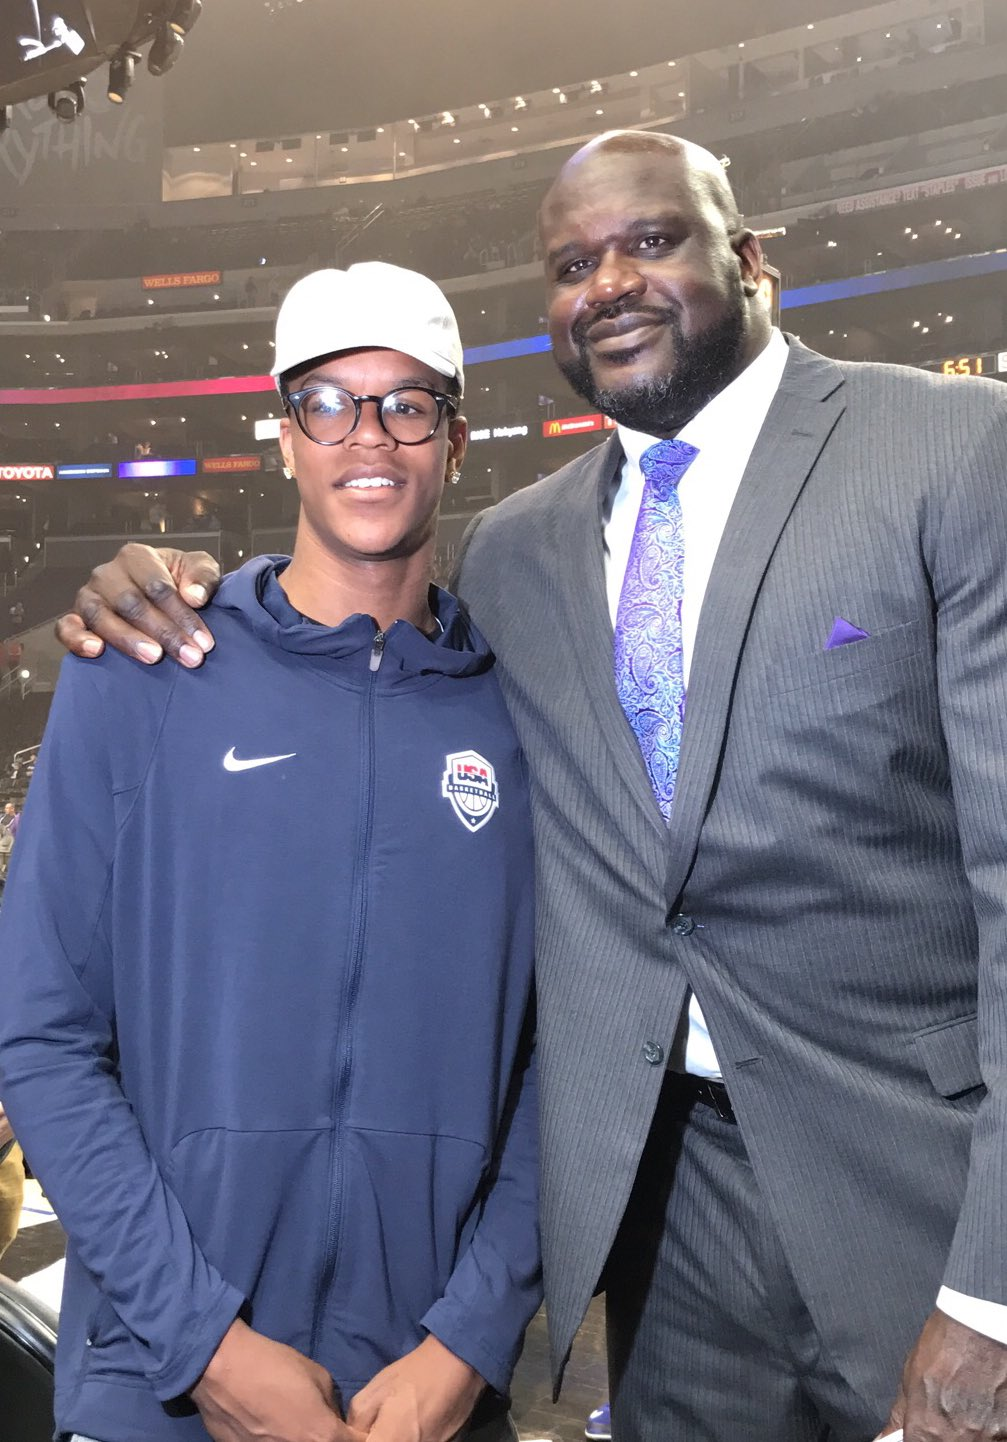 The future... Shareef O'Neal & @SHAQ! #PlayersOnly https://t.co/GI0RIjh4fF